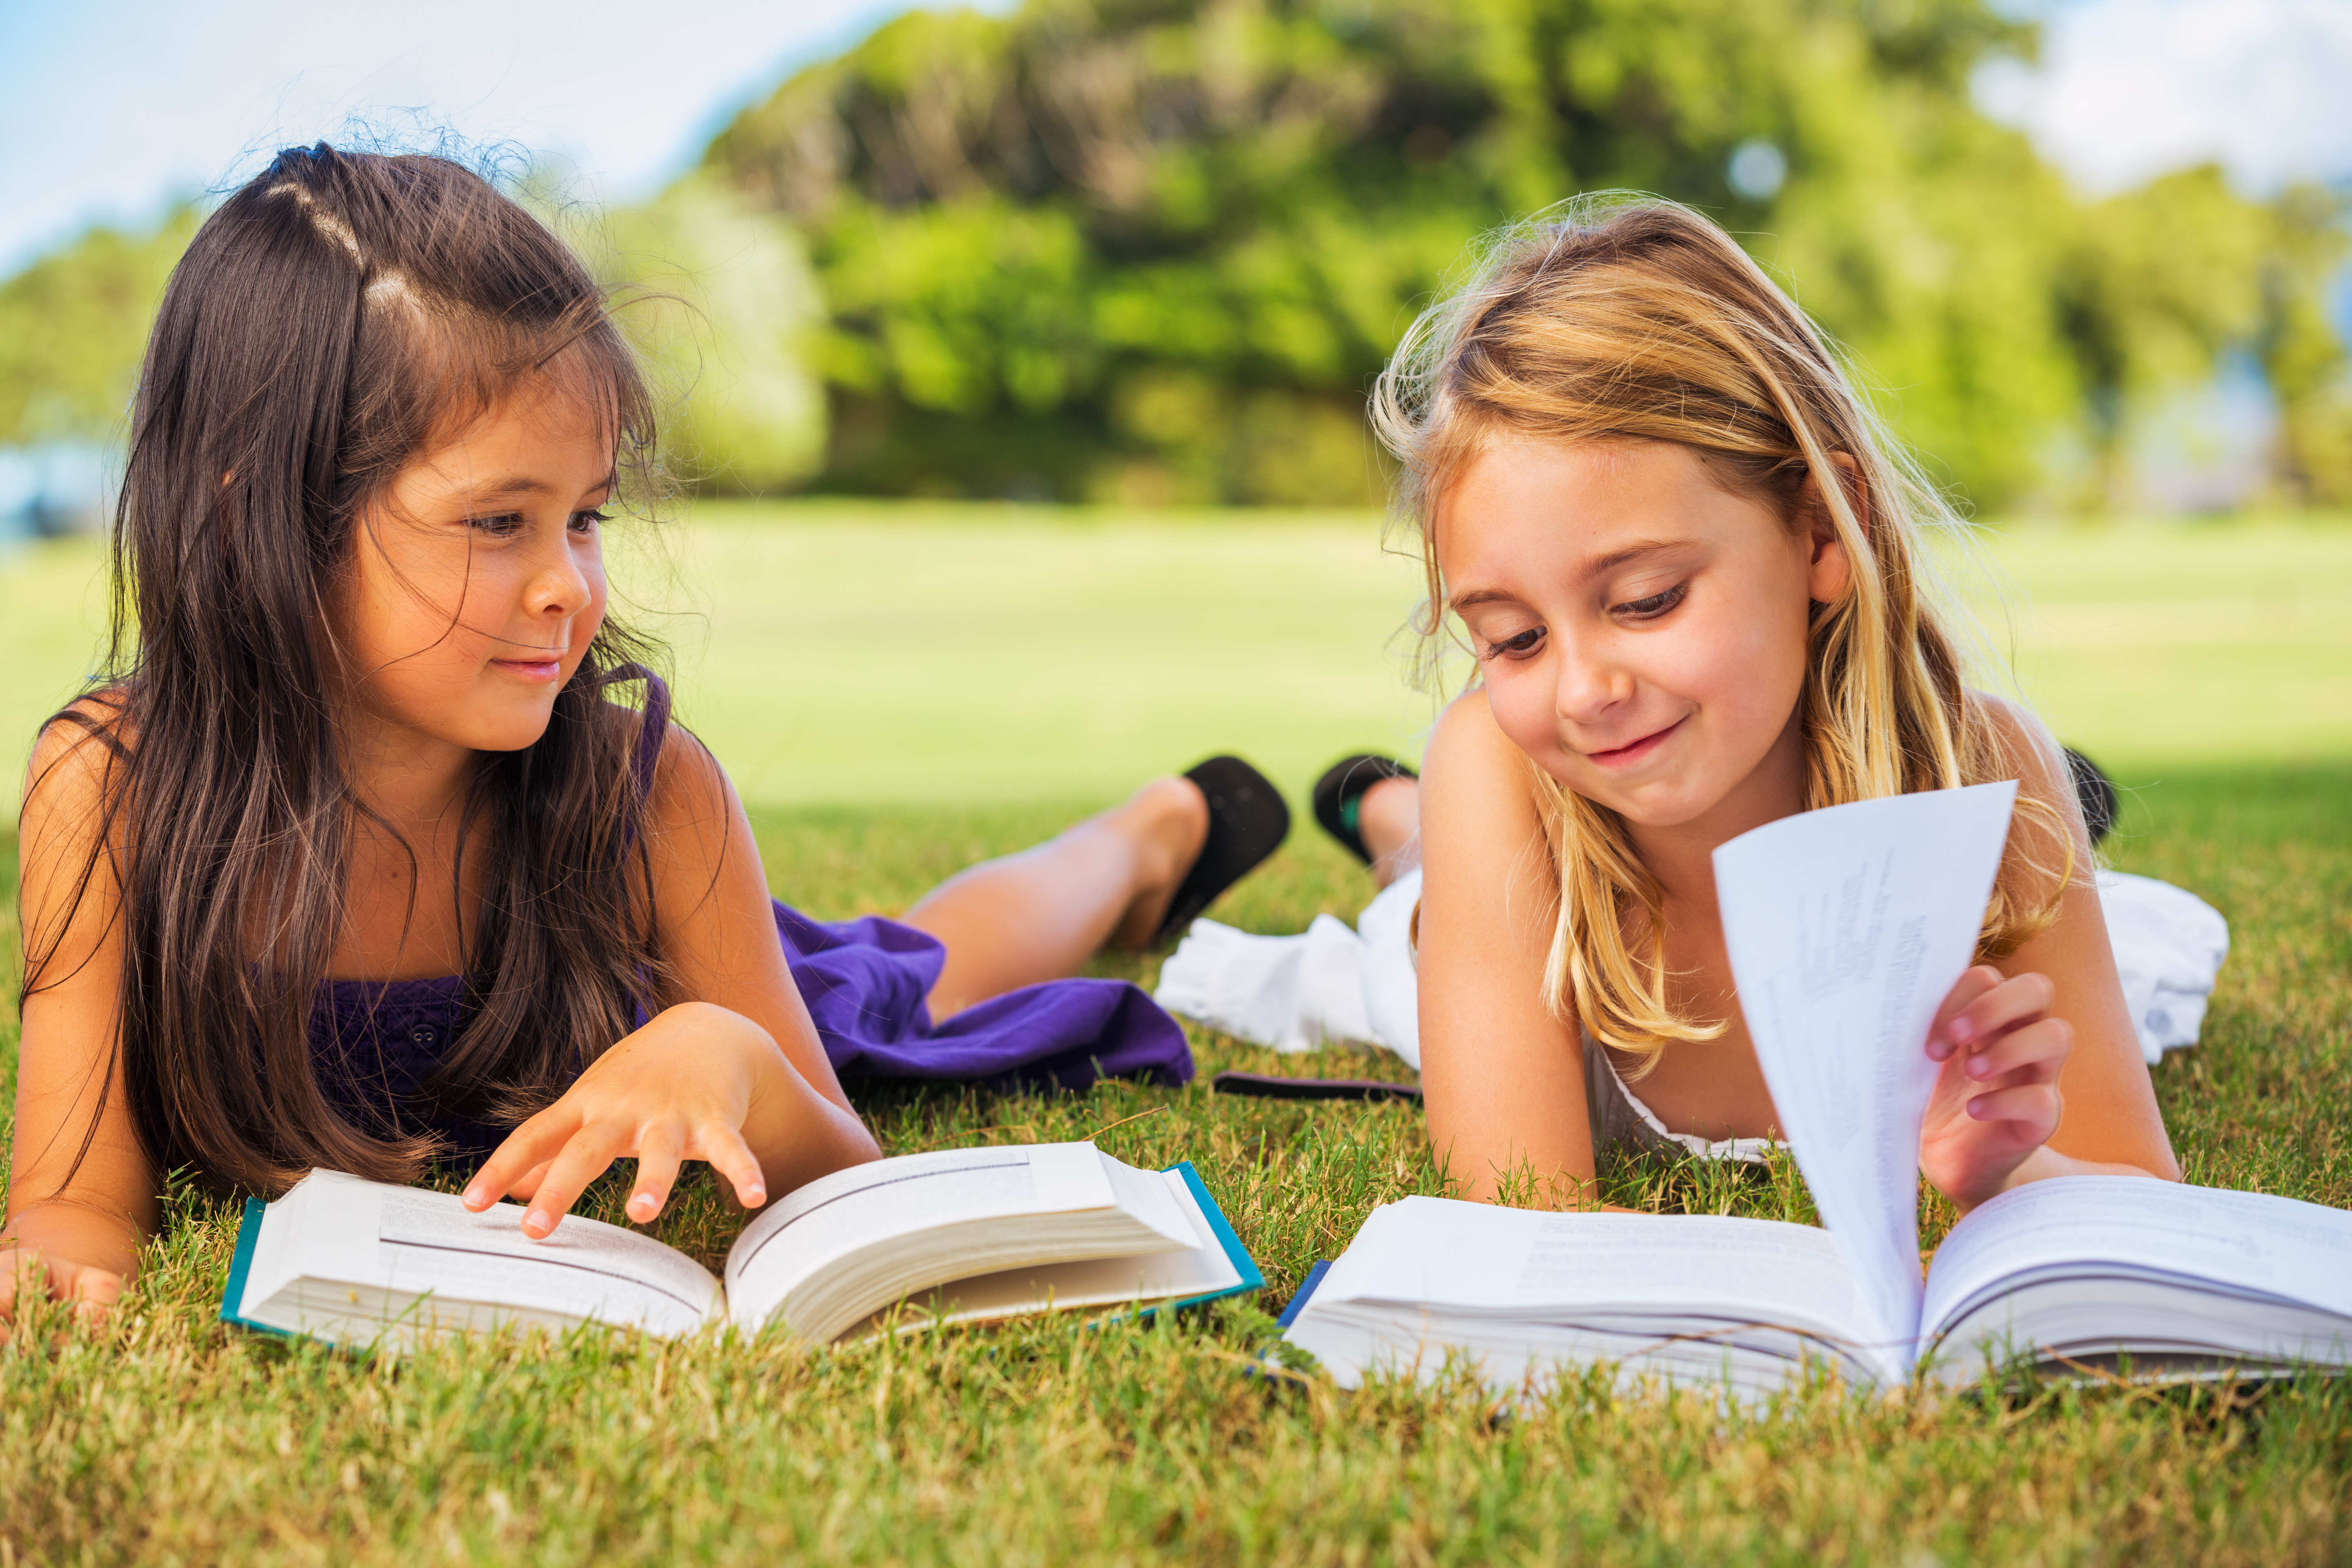 Cute Little Girls Reading Books Outside, Friendship and Learning Concept